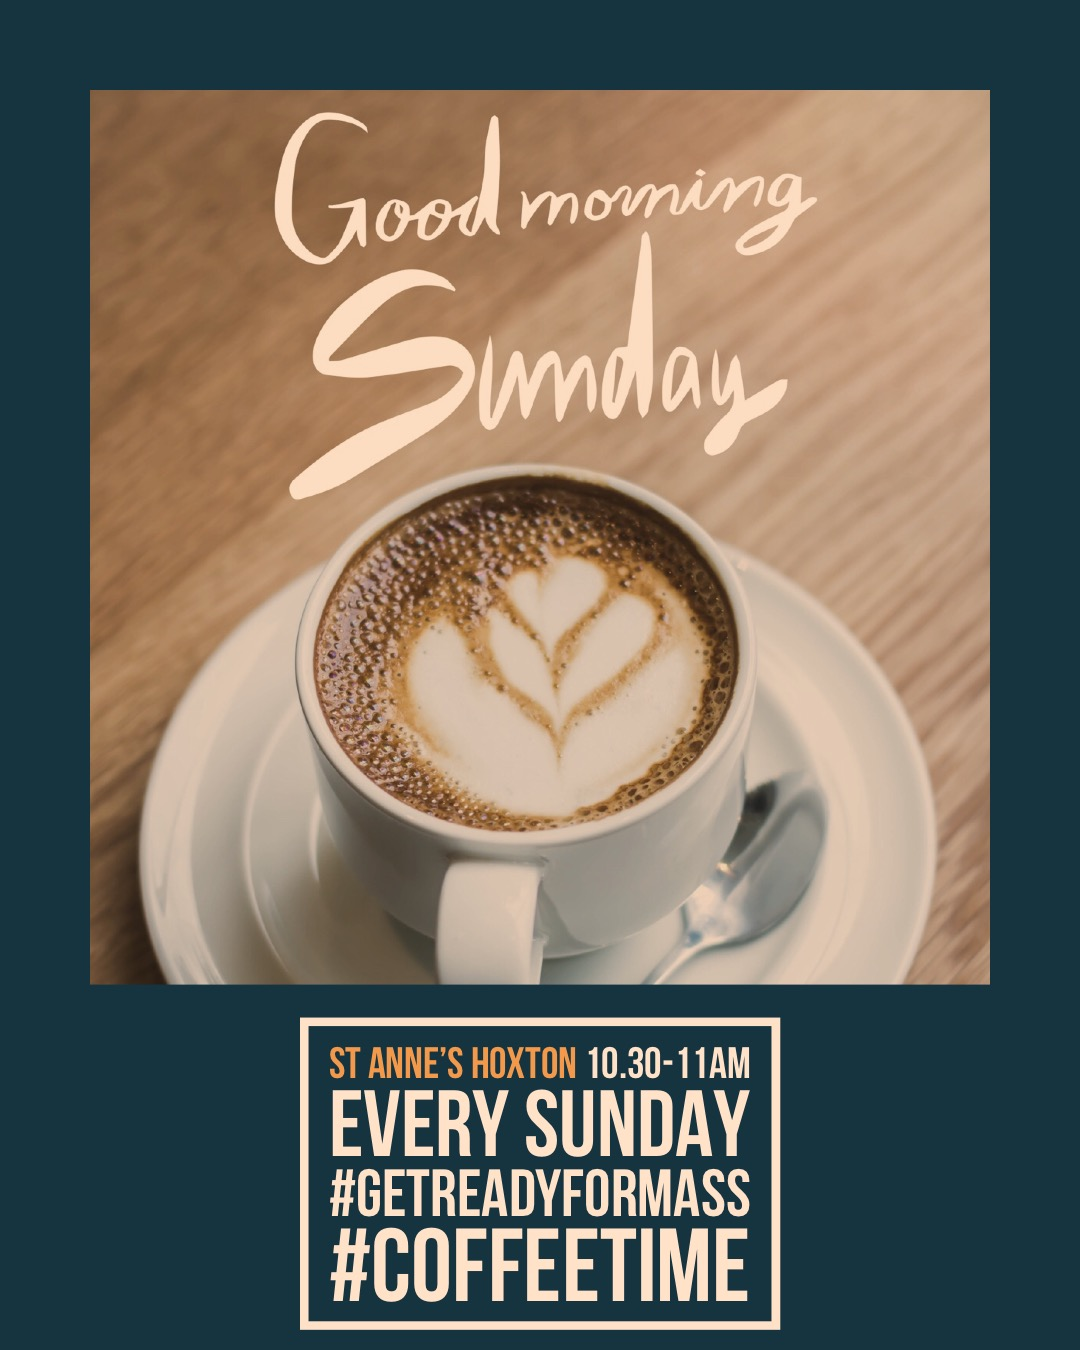 Images of good morning sunday with coffee